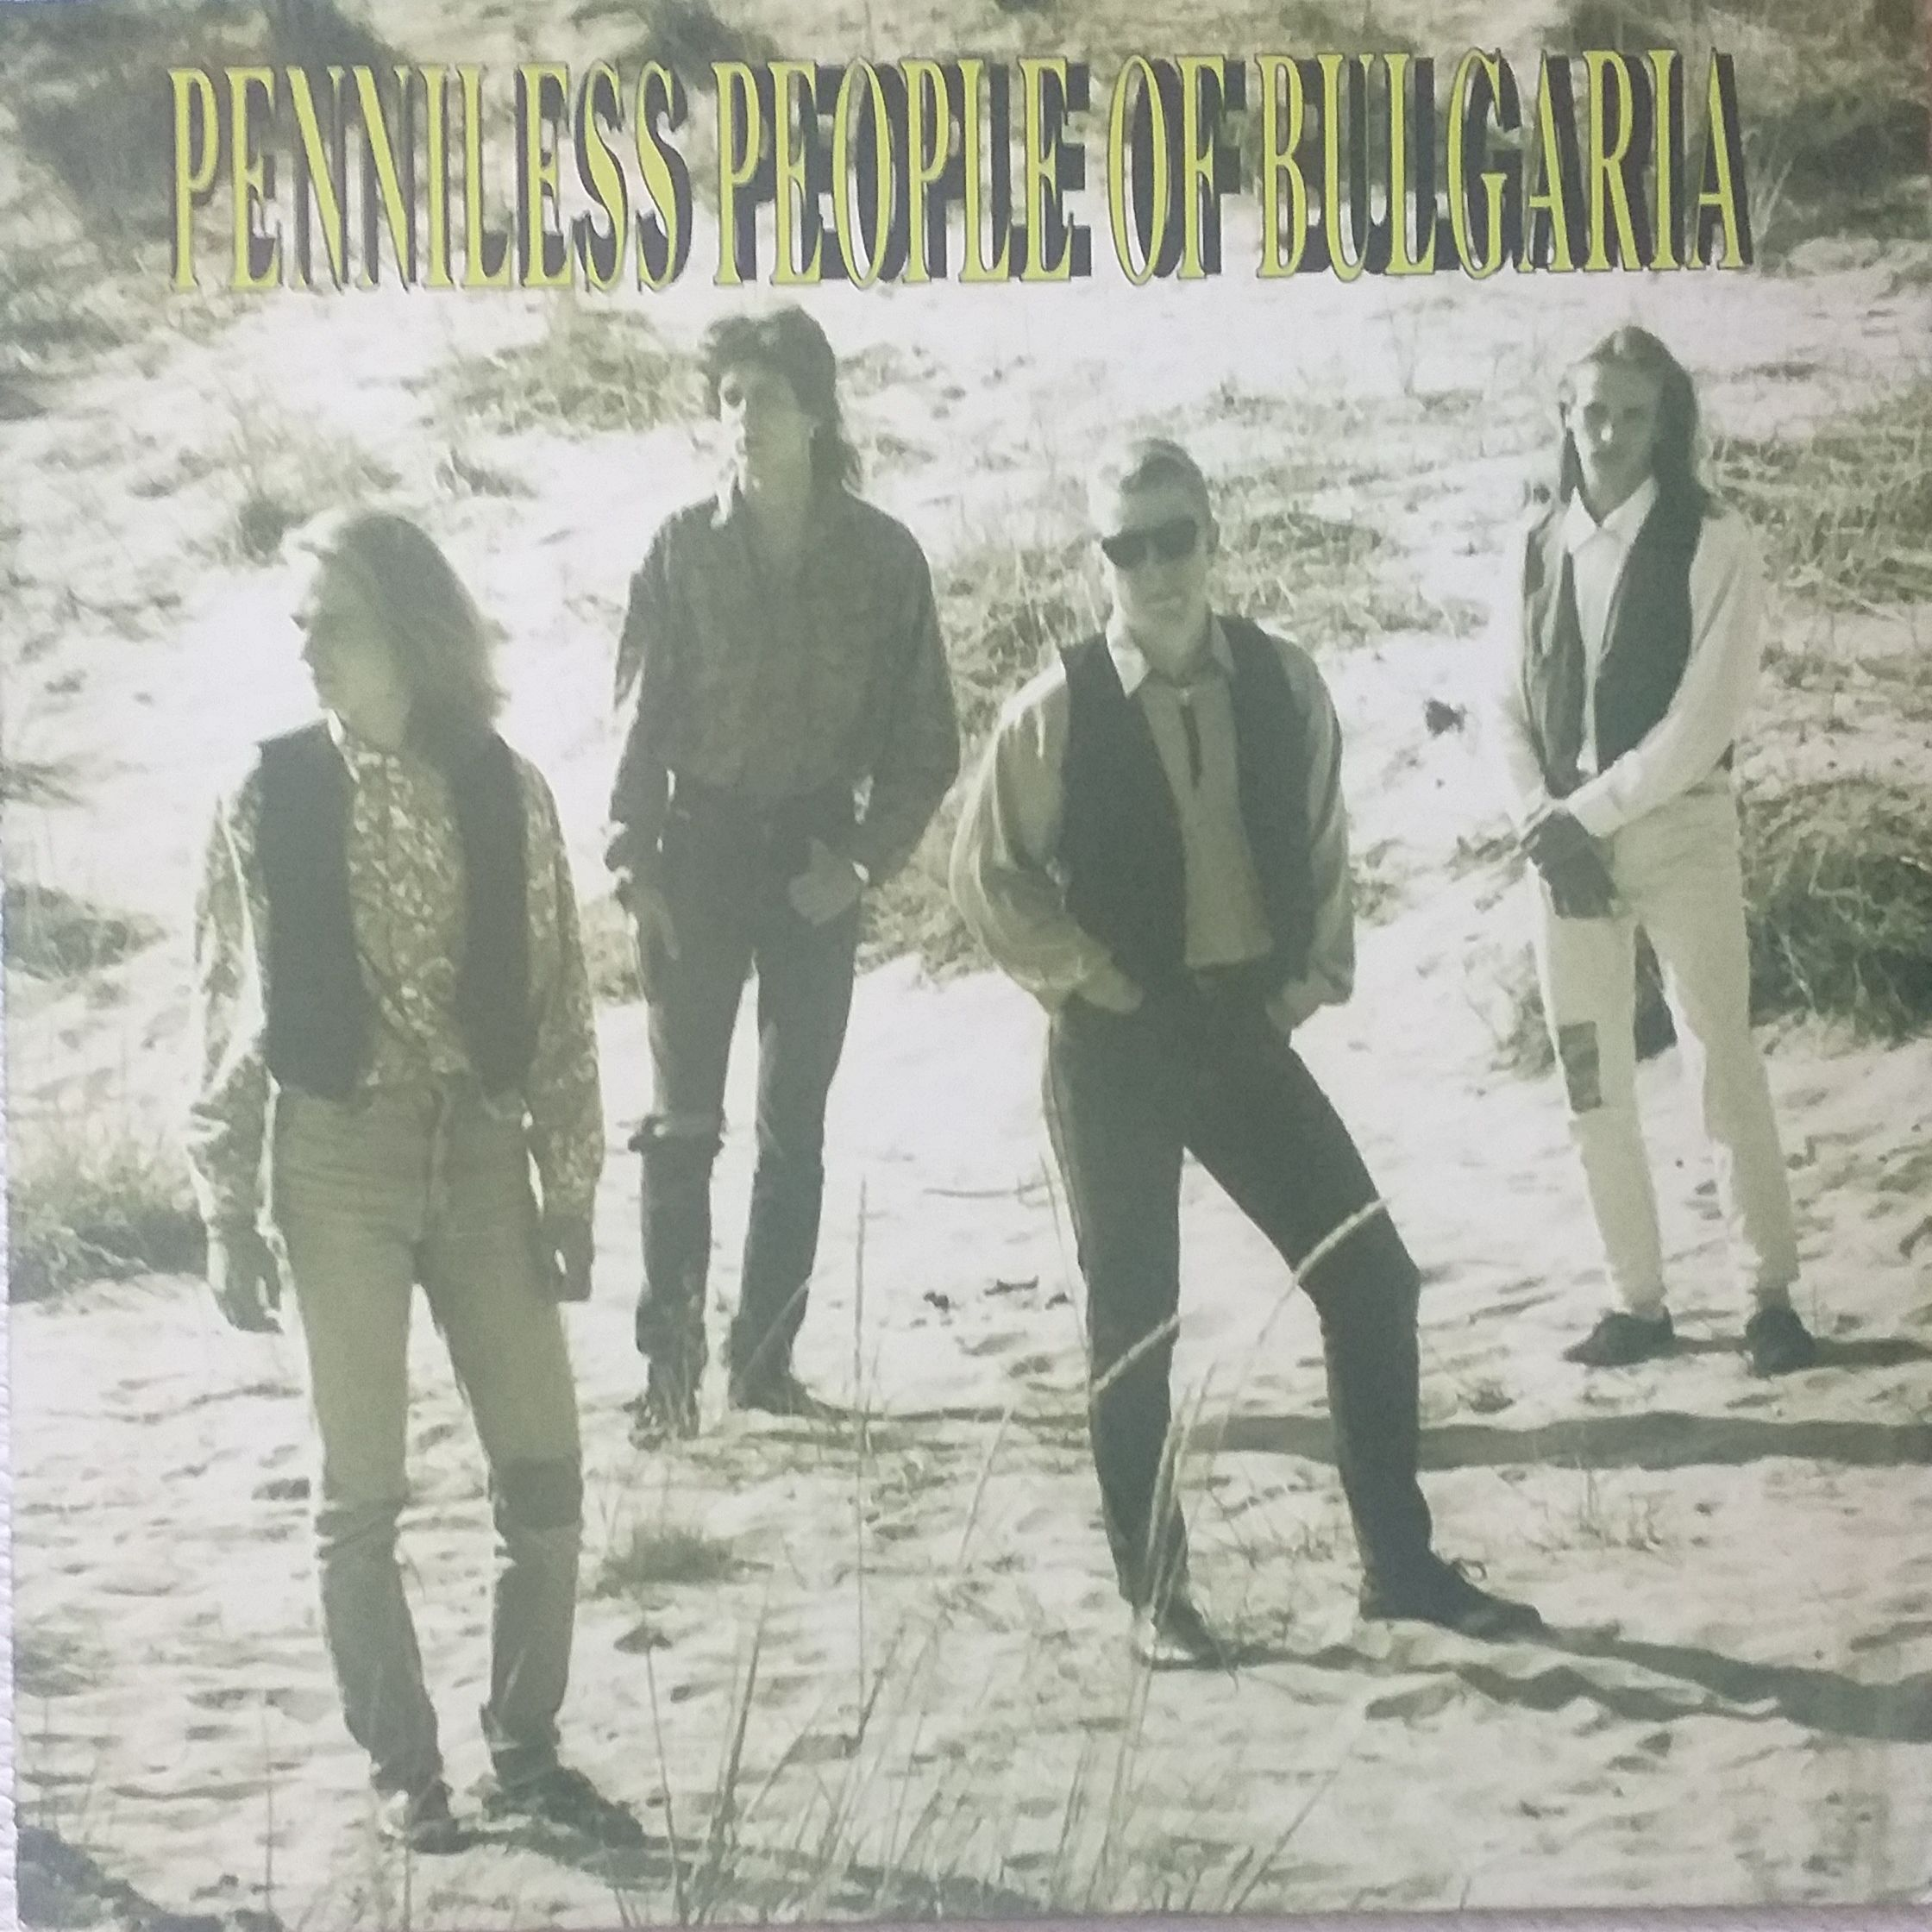 Penniless people of Bulgaria  S/t LP undefined